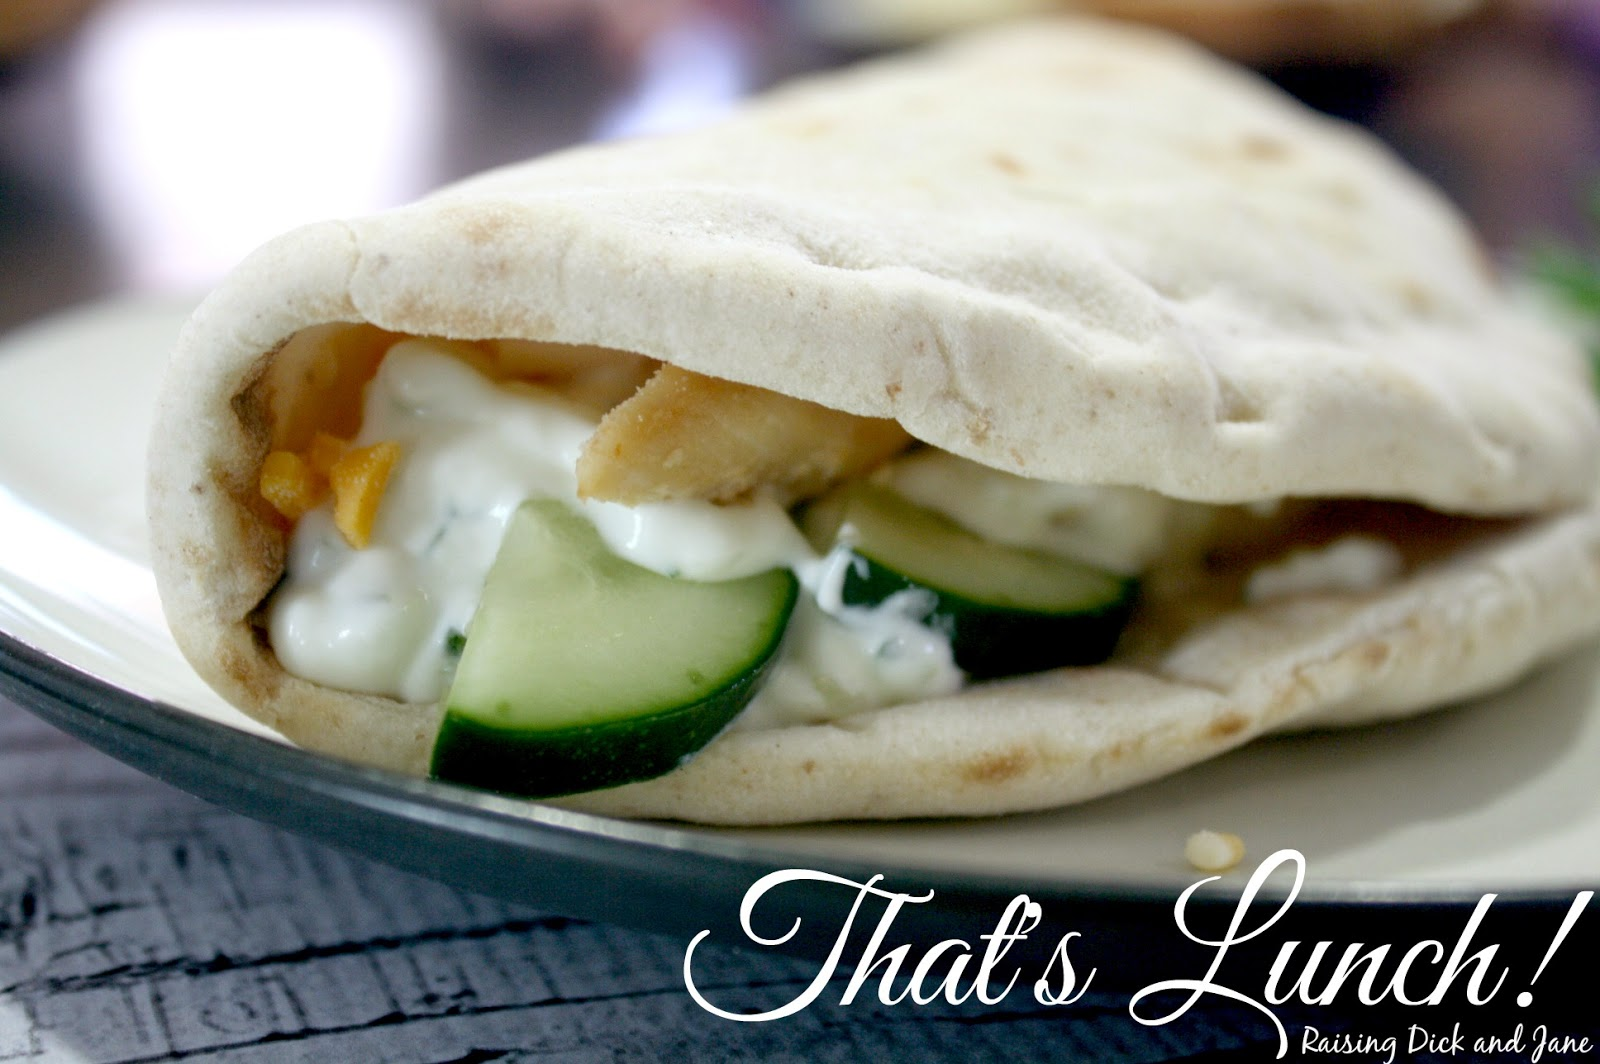 ... and Jane: #ad Chicken Breast Gyro with Homemade Cucumber Sauce Recipe